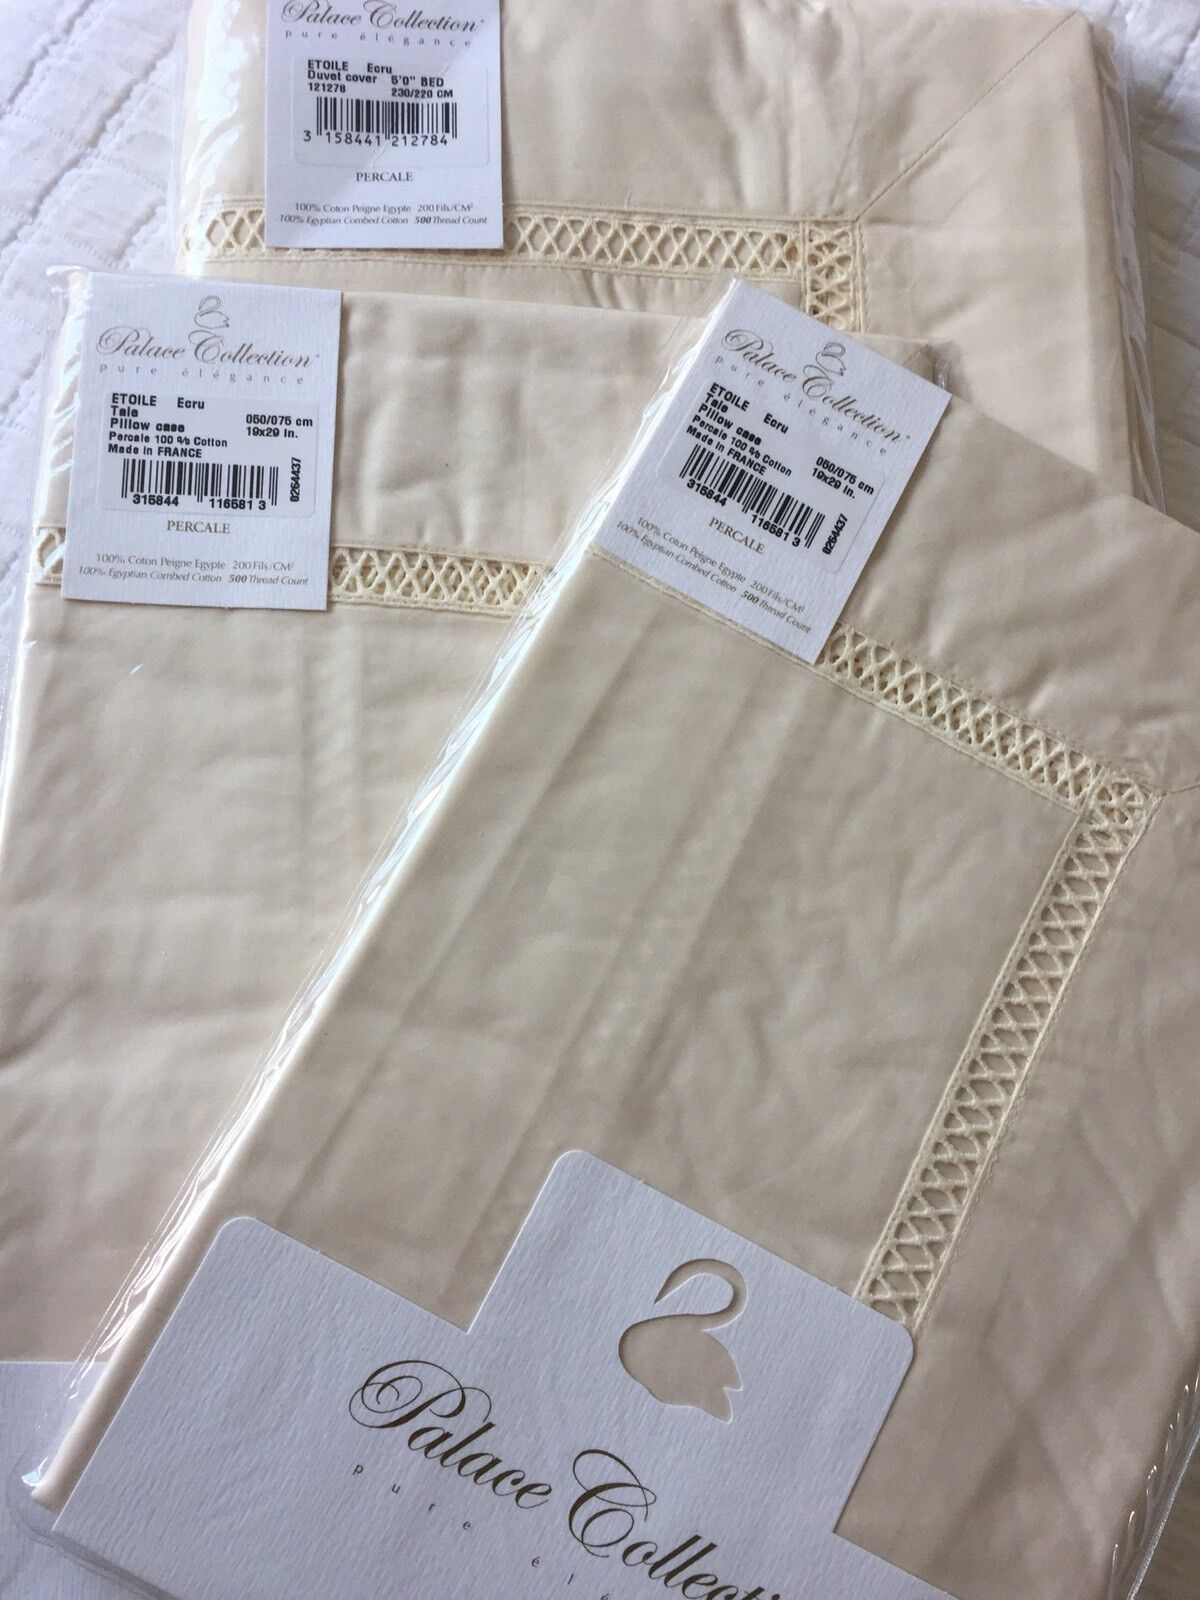 YVES DELORME ETOILE ECRU DUVET COVER SET 230 220CMS PALACE COLLECTION LUXURY